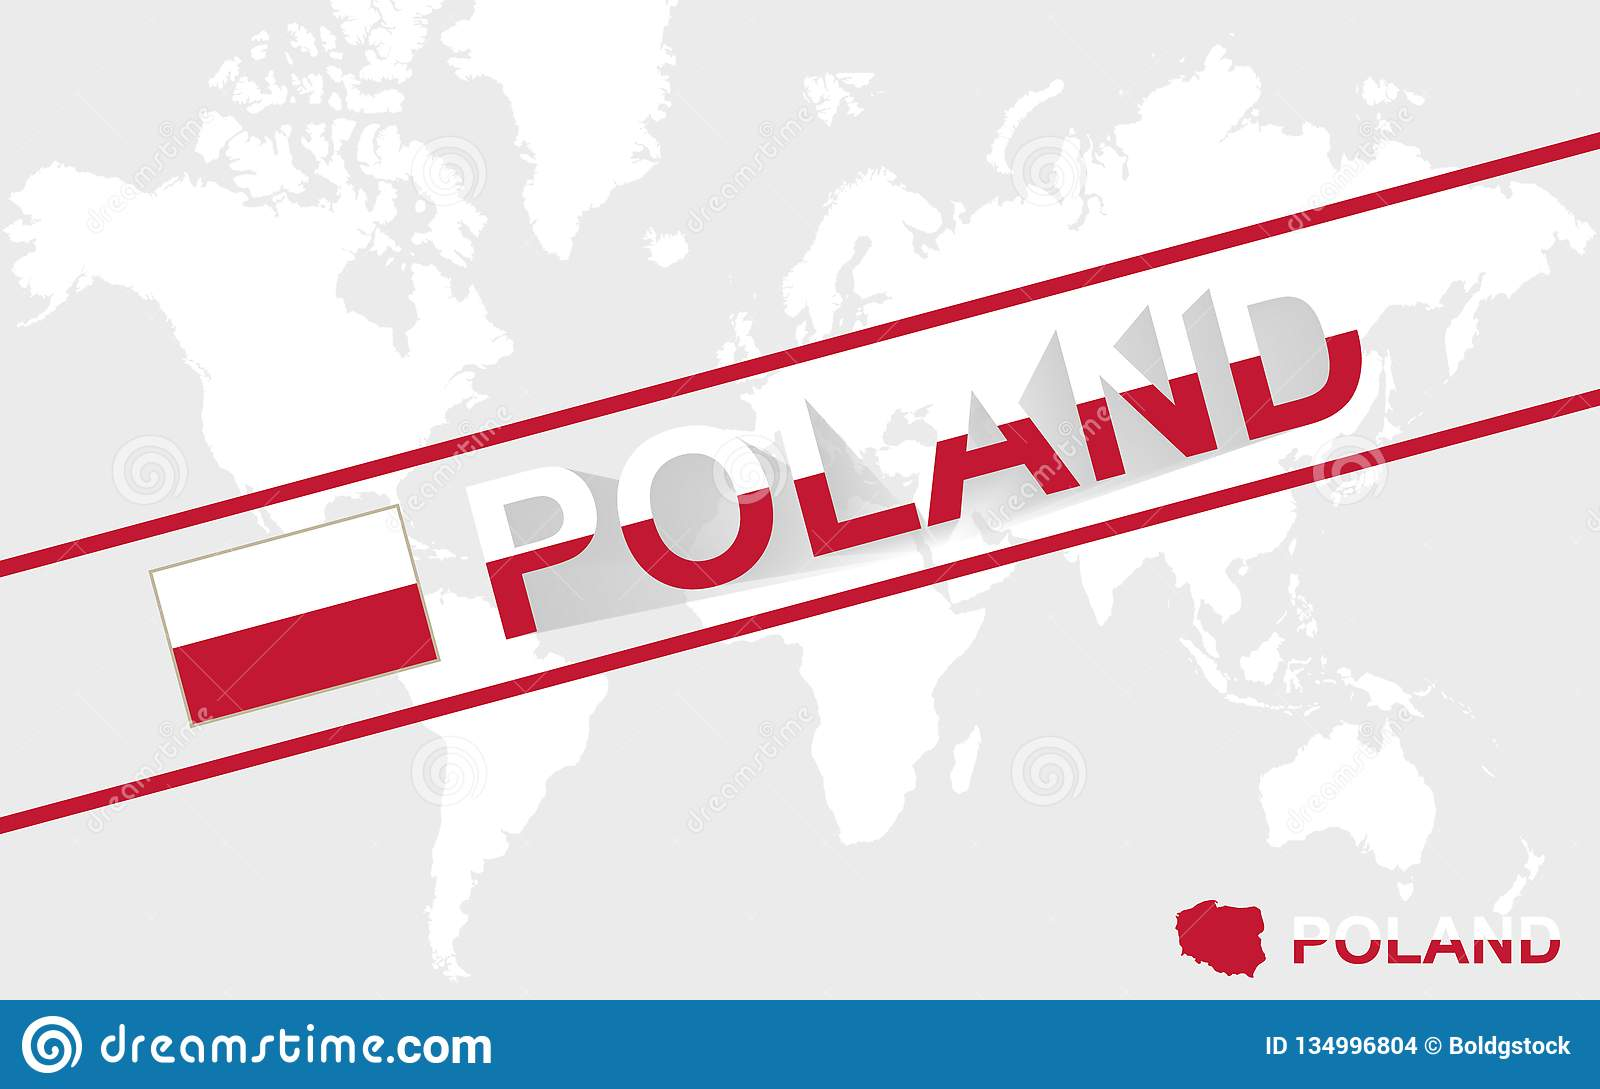 Poland Map Flag And Text Illustration Stock Vector - Illustration of ...